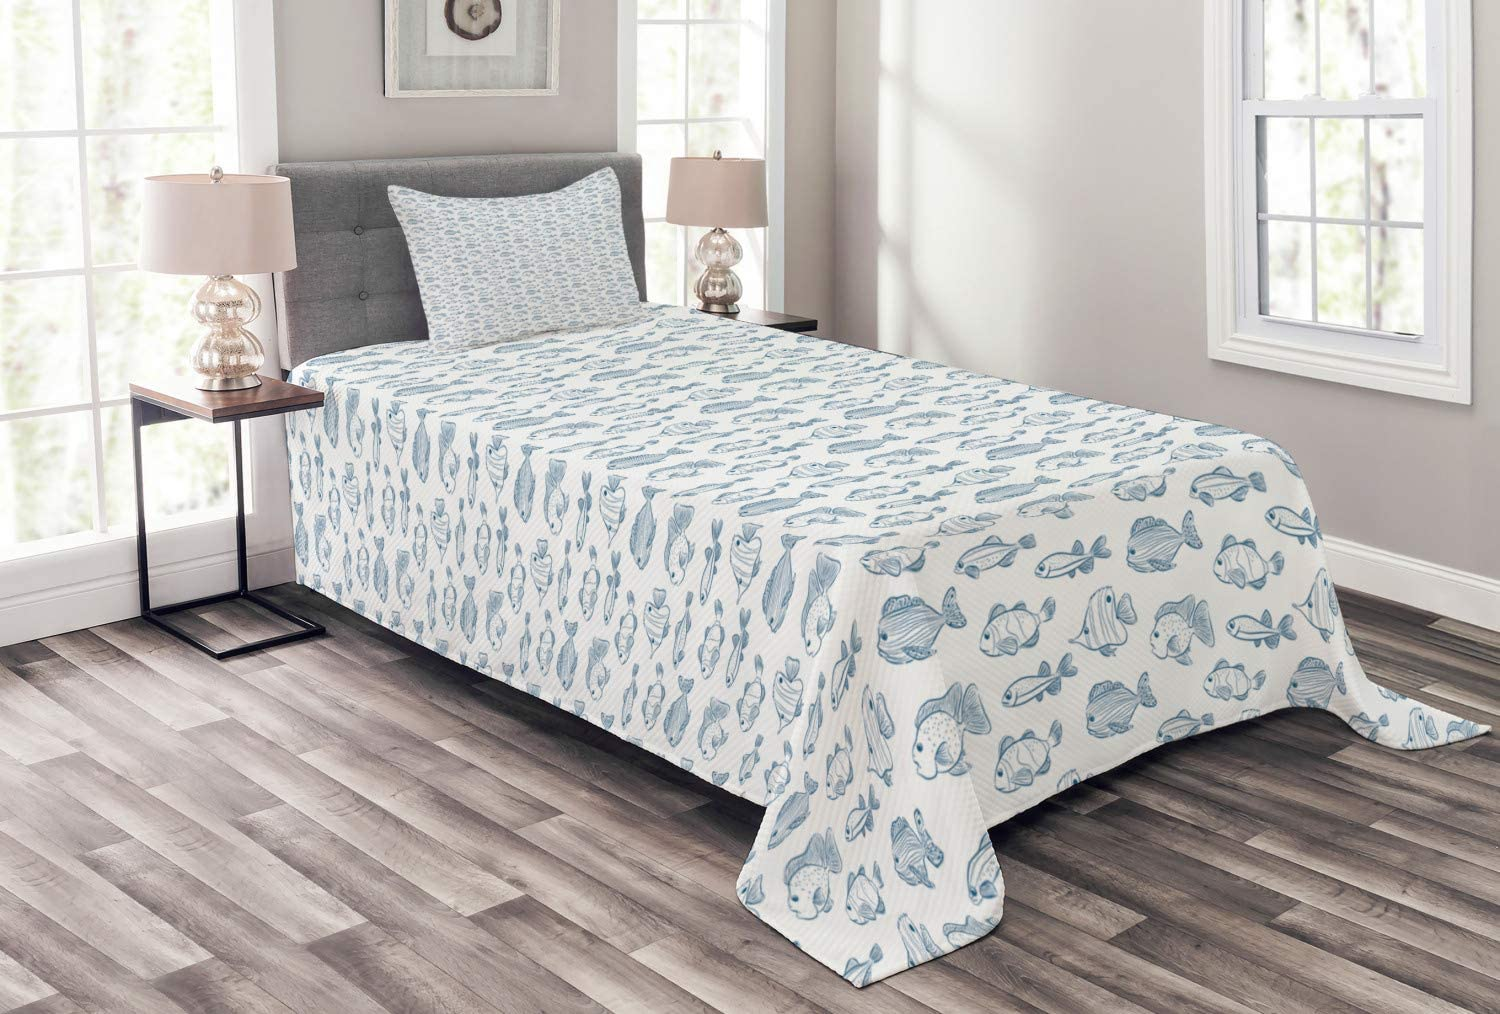 Ambesonne Sea Life Popular standard Selling and selling Bedspread Outline Fish Design Hand of Drawn